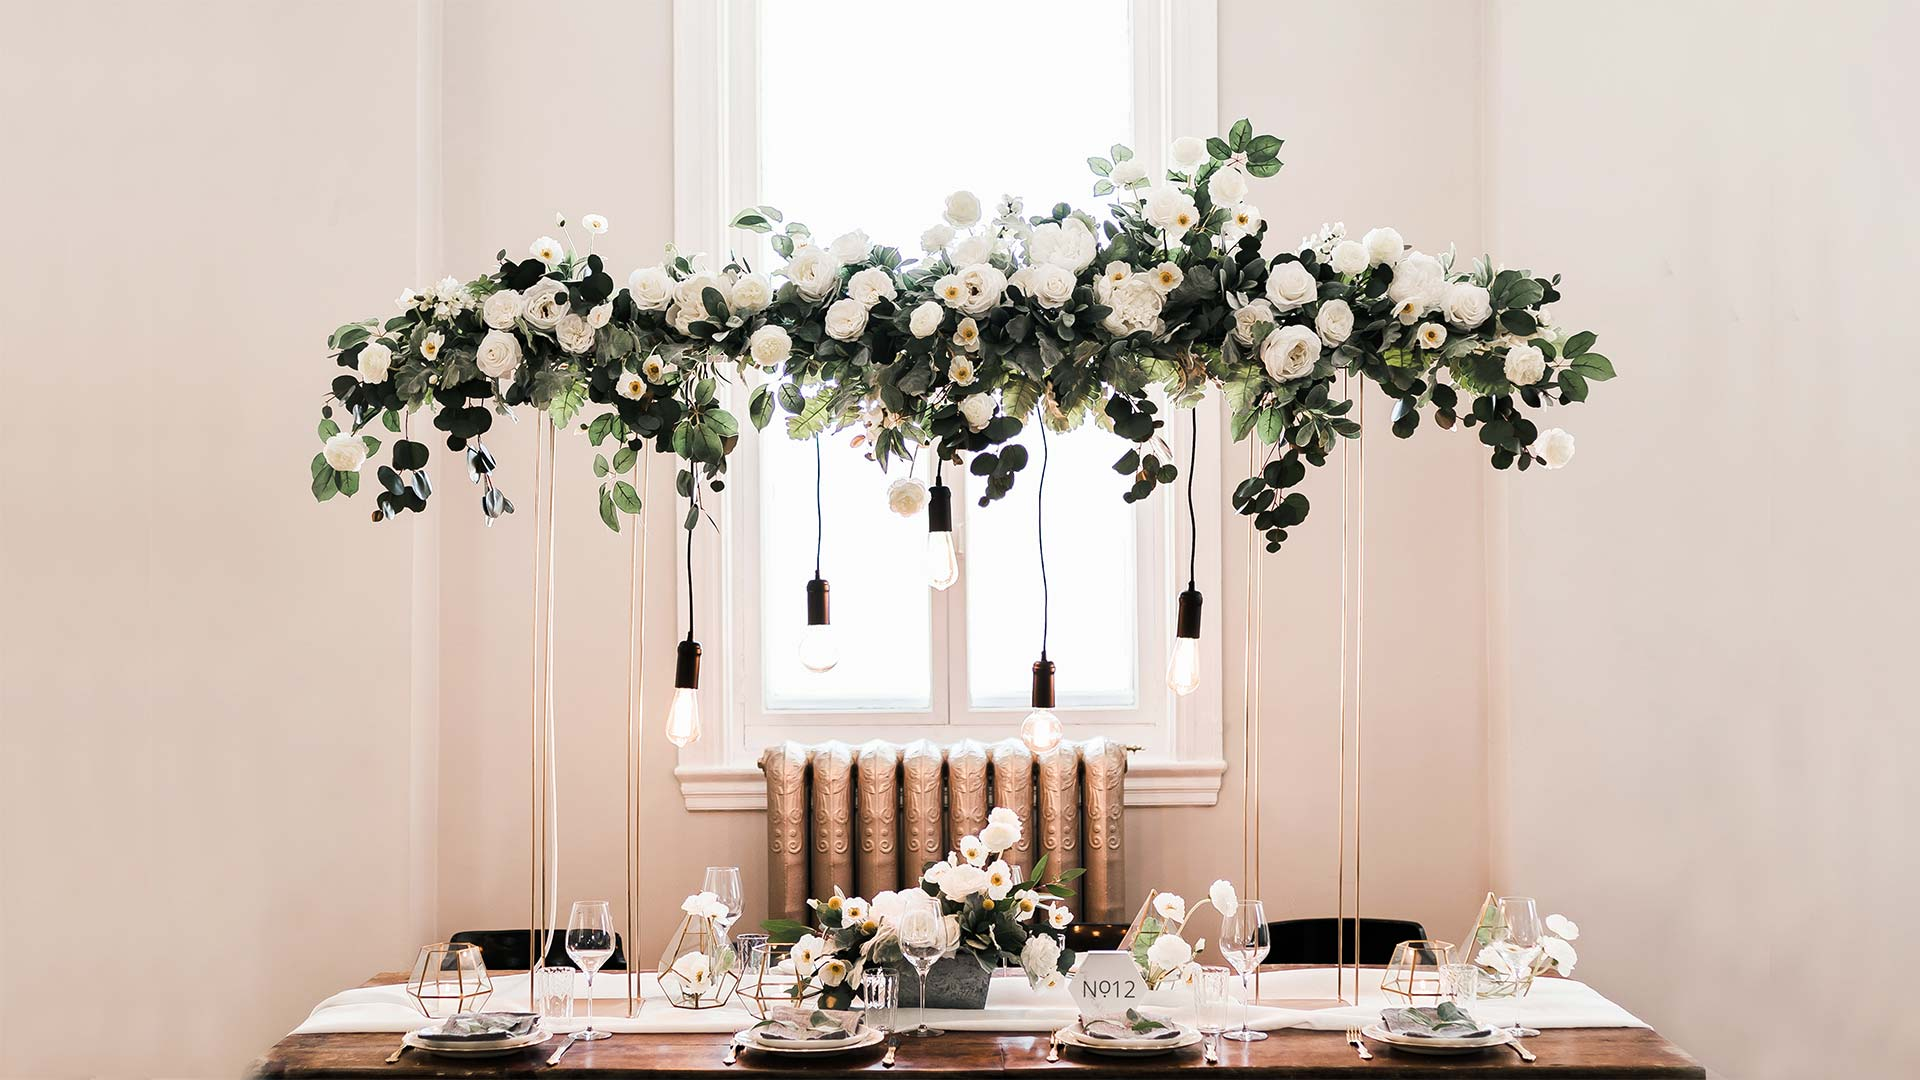 Mlle Artsy - Wedding decor and bouquet rental